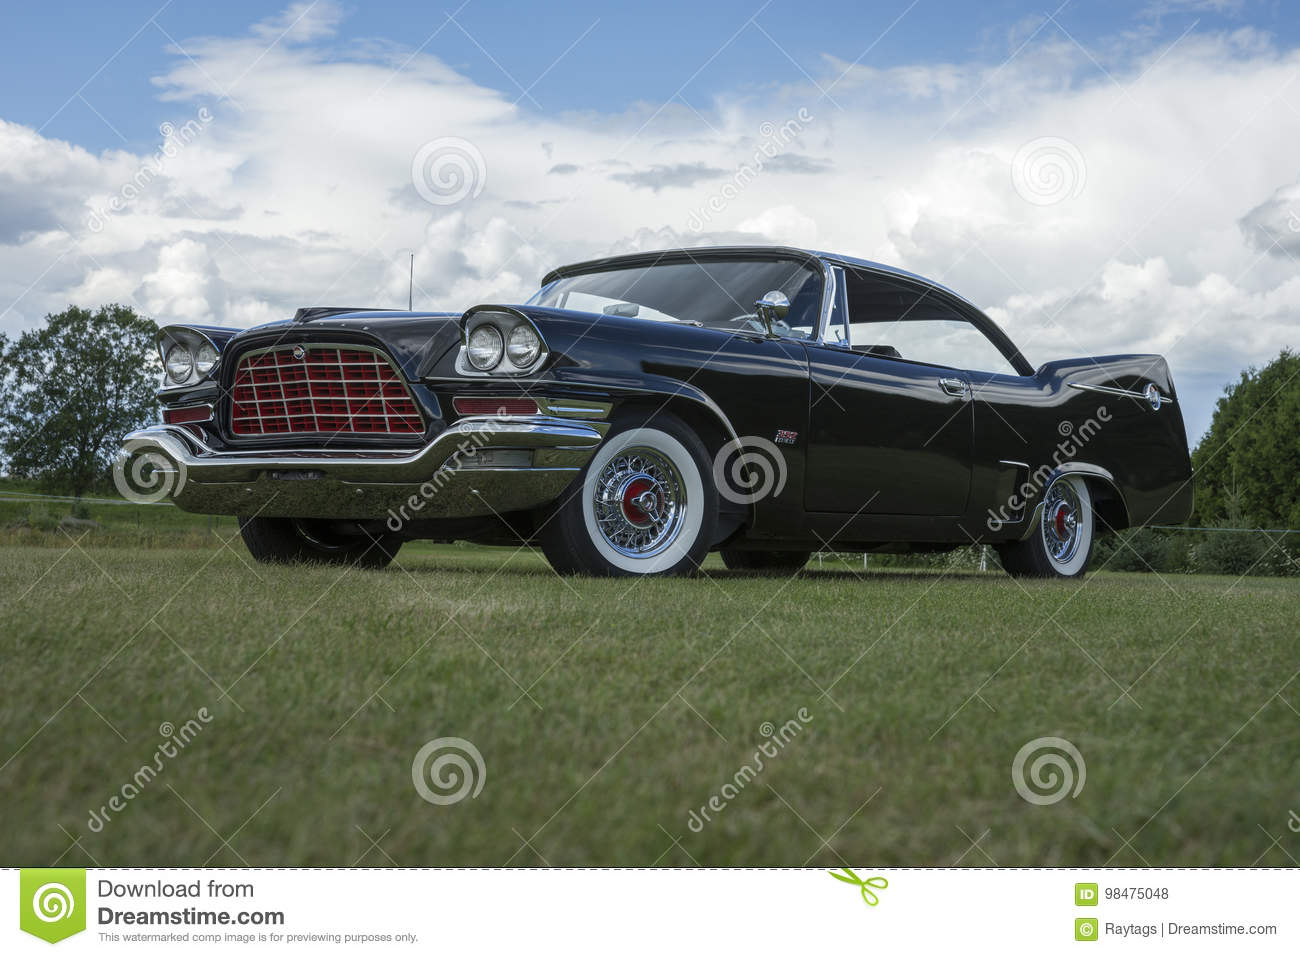 all classic just articles coupe an car recently more been the and according style with acquired without park ore was to original hardtop texas fins had forest dealer chrysler than from it classics